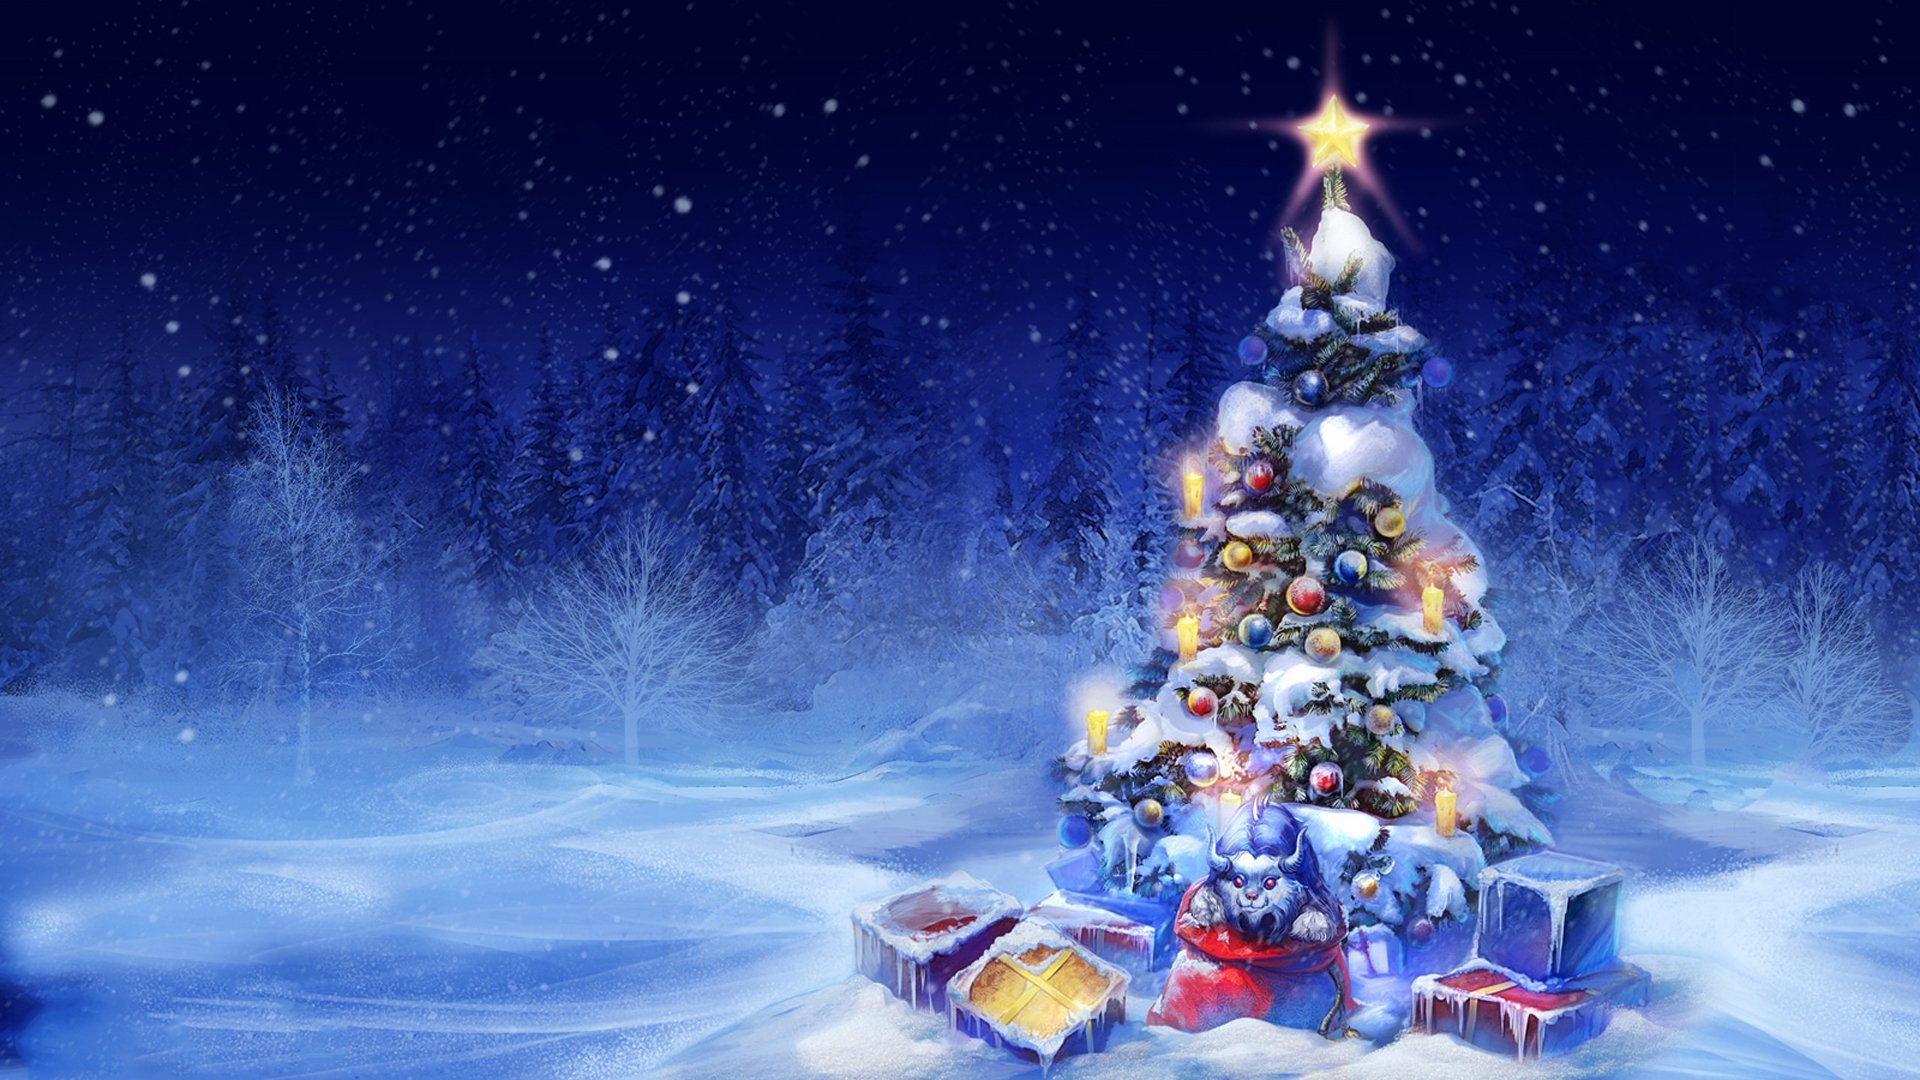 christmas tree gifts lights new year snow toys HD wallpaper 1920x1080